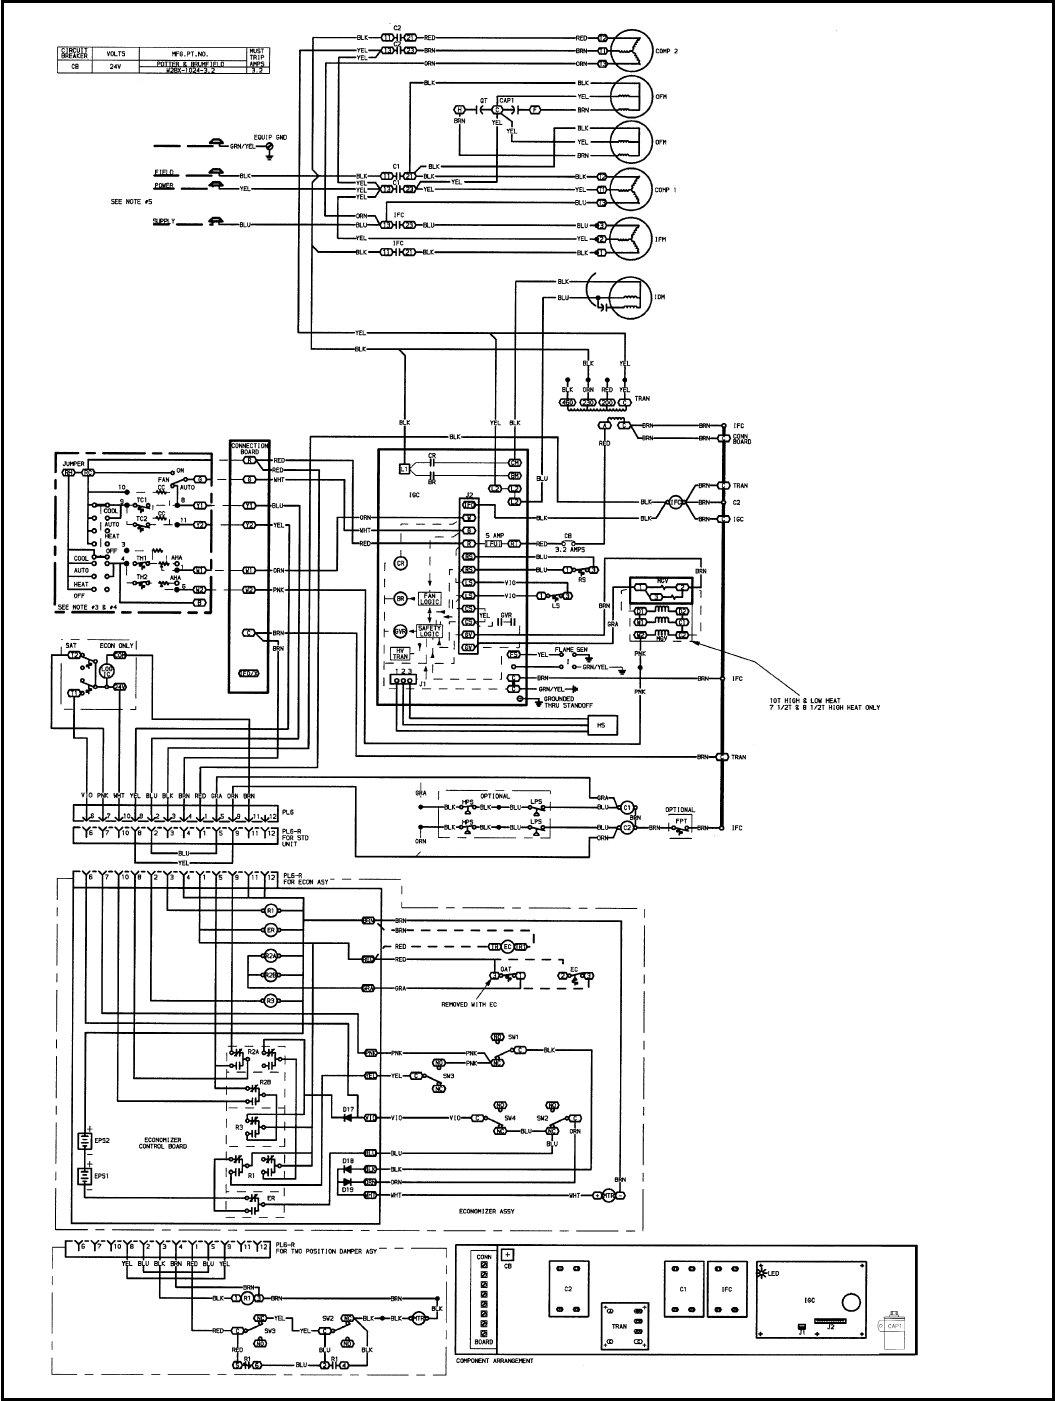 Bryant 580D TYPICAL WIRING SCHEMATIC 580D036-150